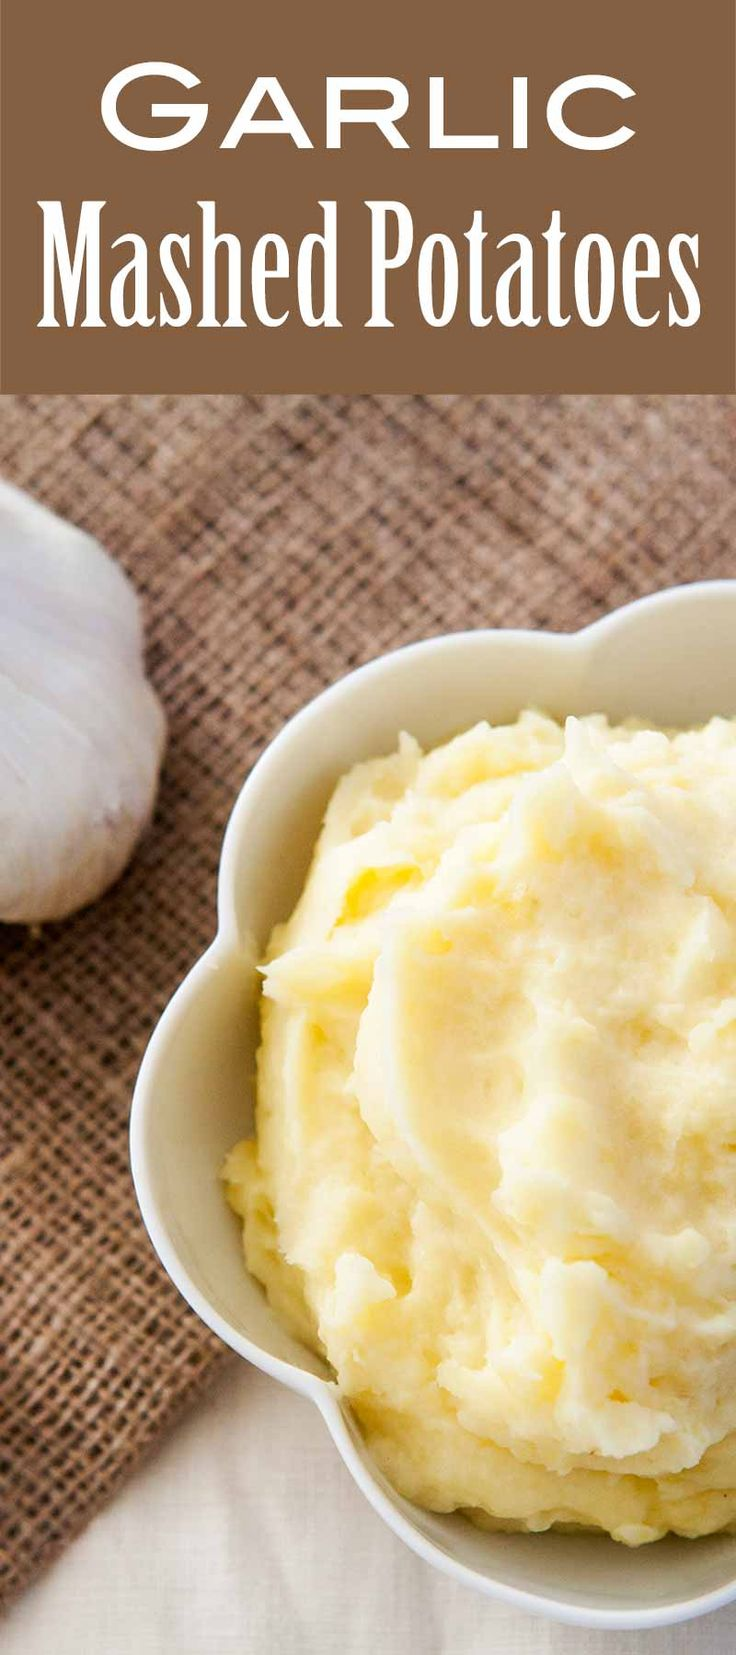 These Creamy Garlic Mashed Potatoes made with roasted garlic and Yukon Gold potatoes are the BEST! #MashedPotatoes #Potatoes #ThanksgivingRecipes #HolidayRecipes